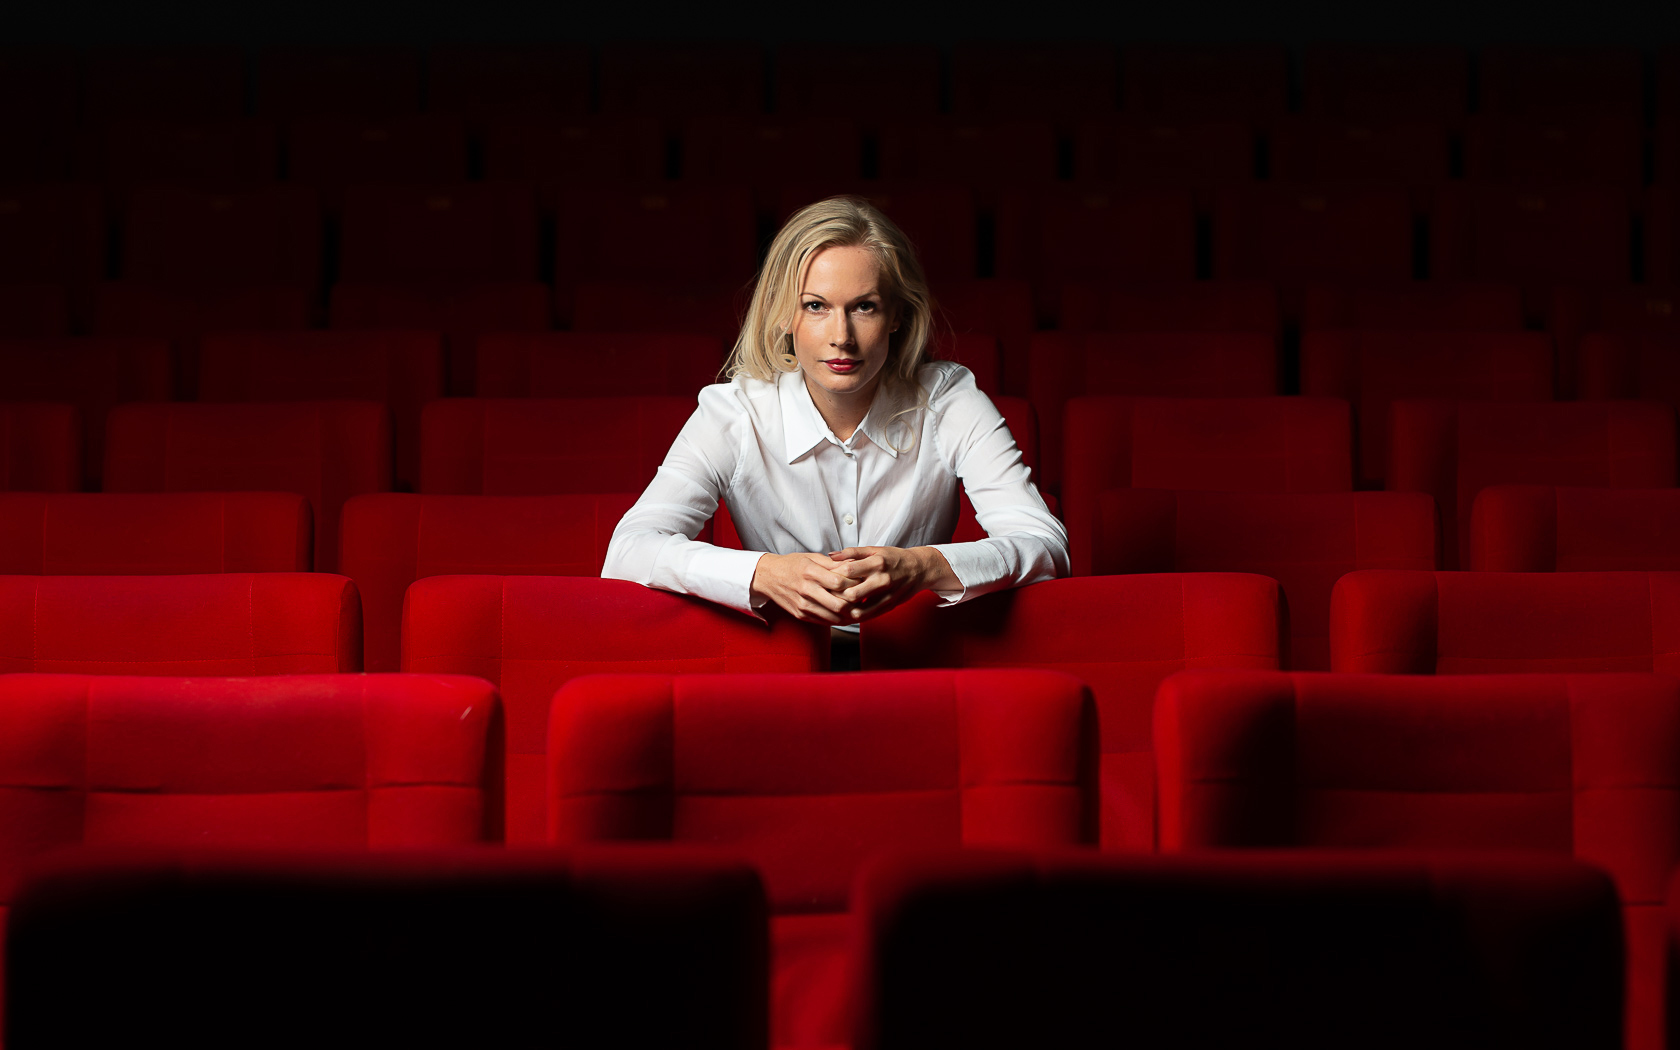 Jennica in a red chair cinema - portrait and lifestyle photography